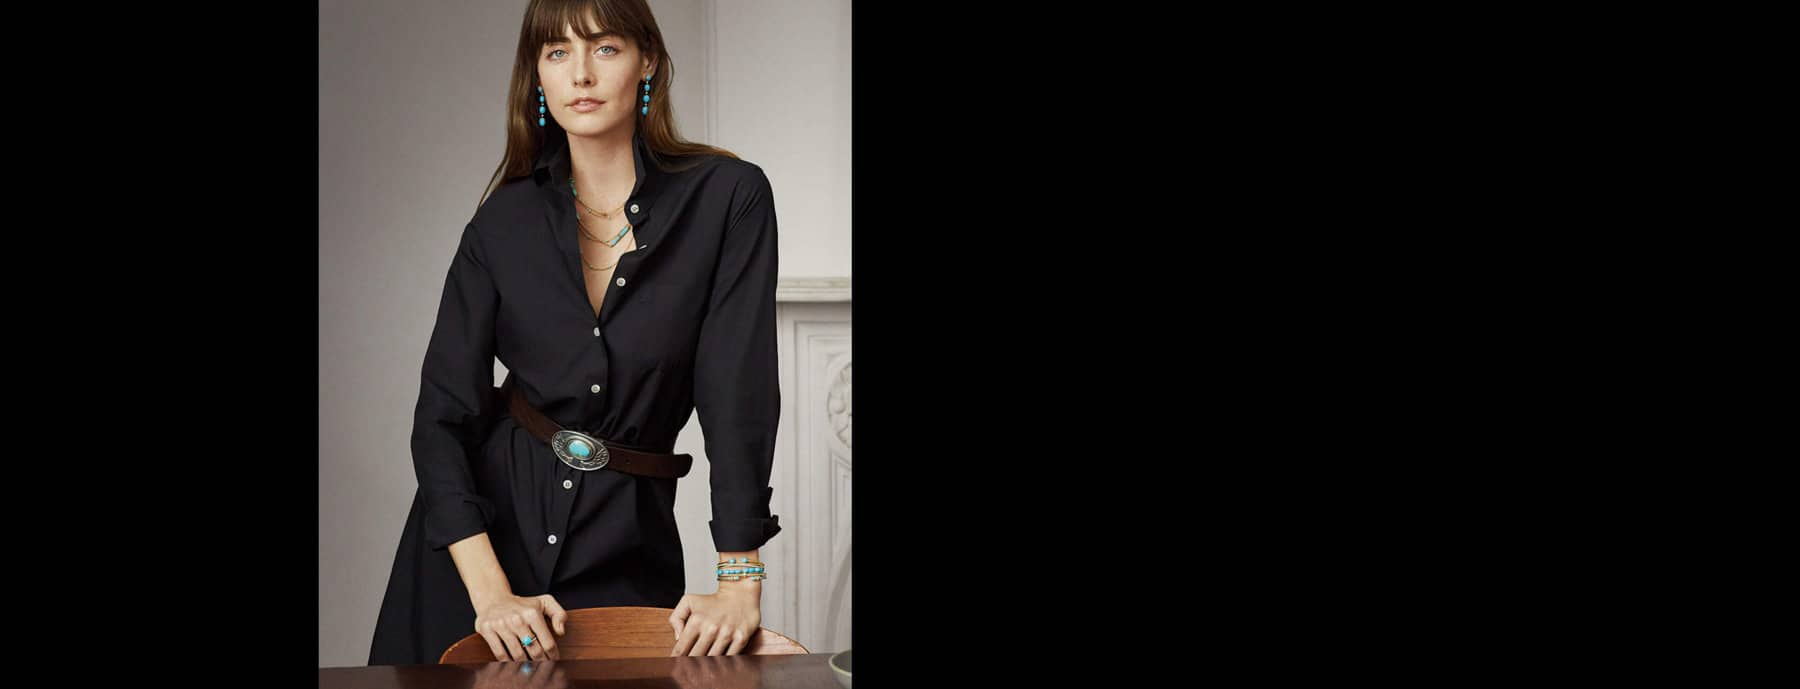 A color photo of model Juliette Labelle shows her wearing a black shirtdress and David Yurman jewelry.